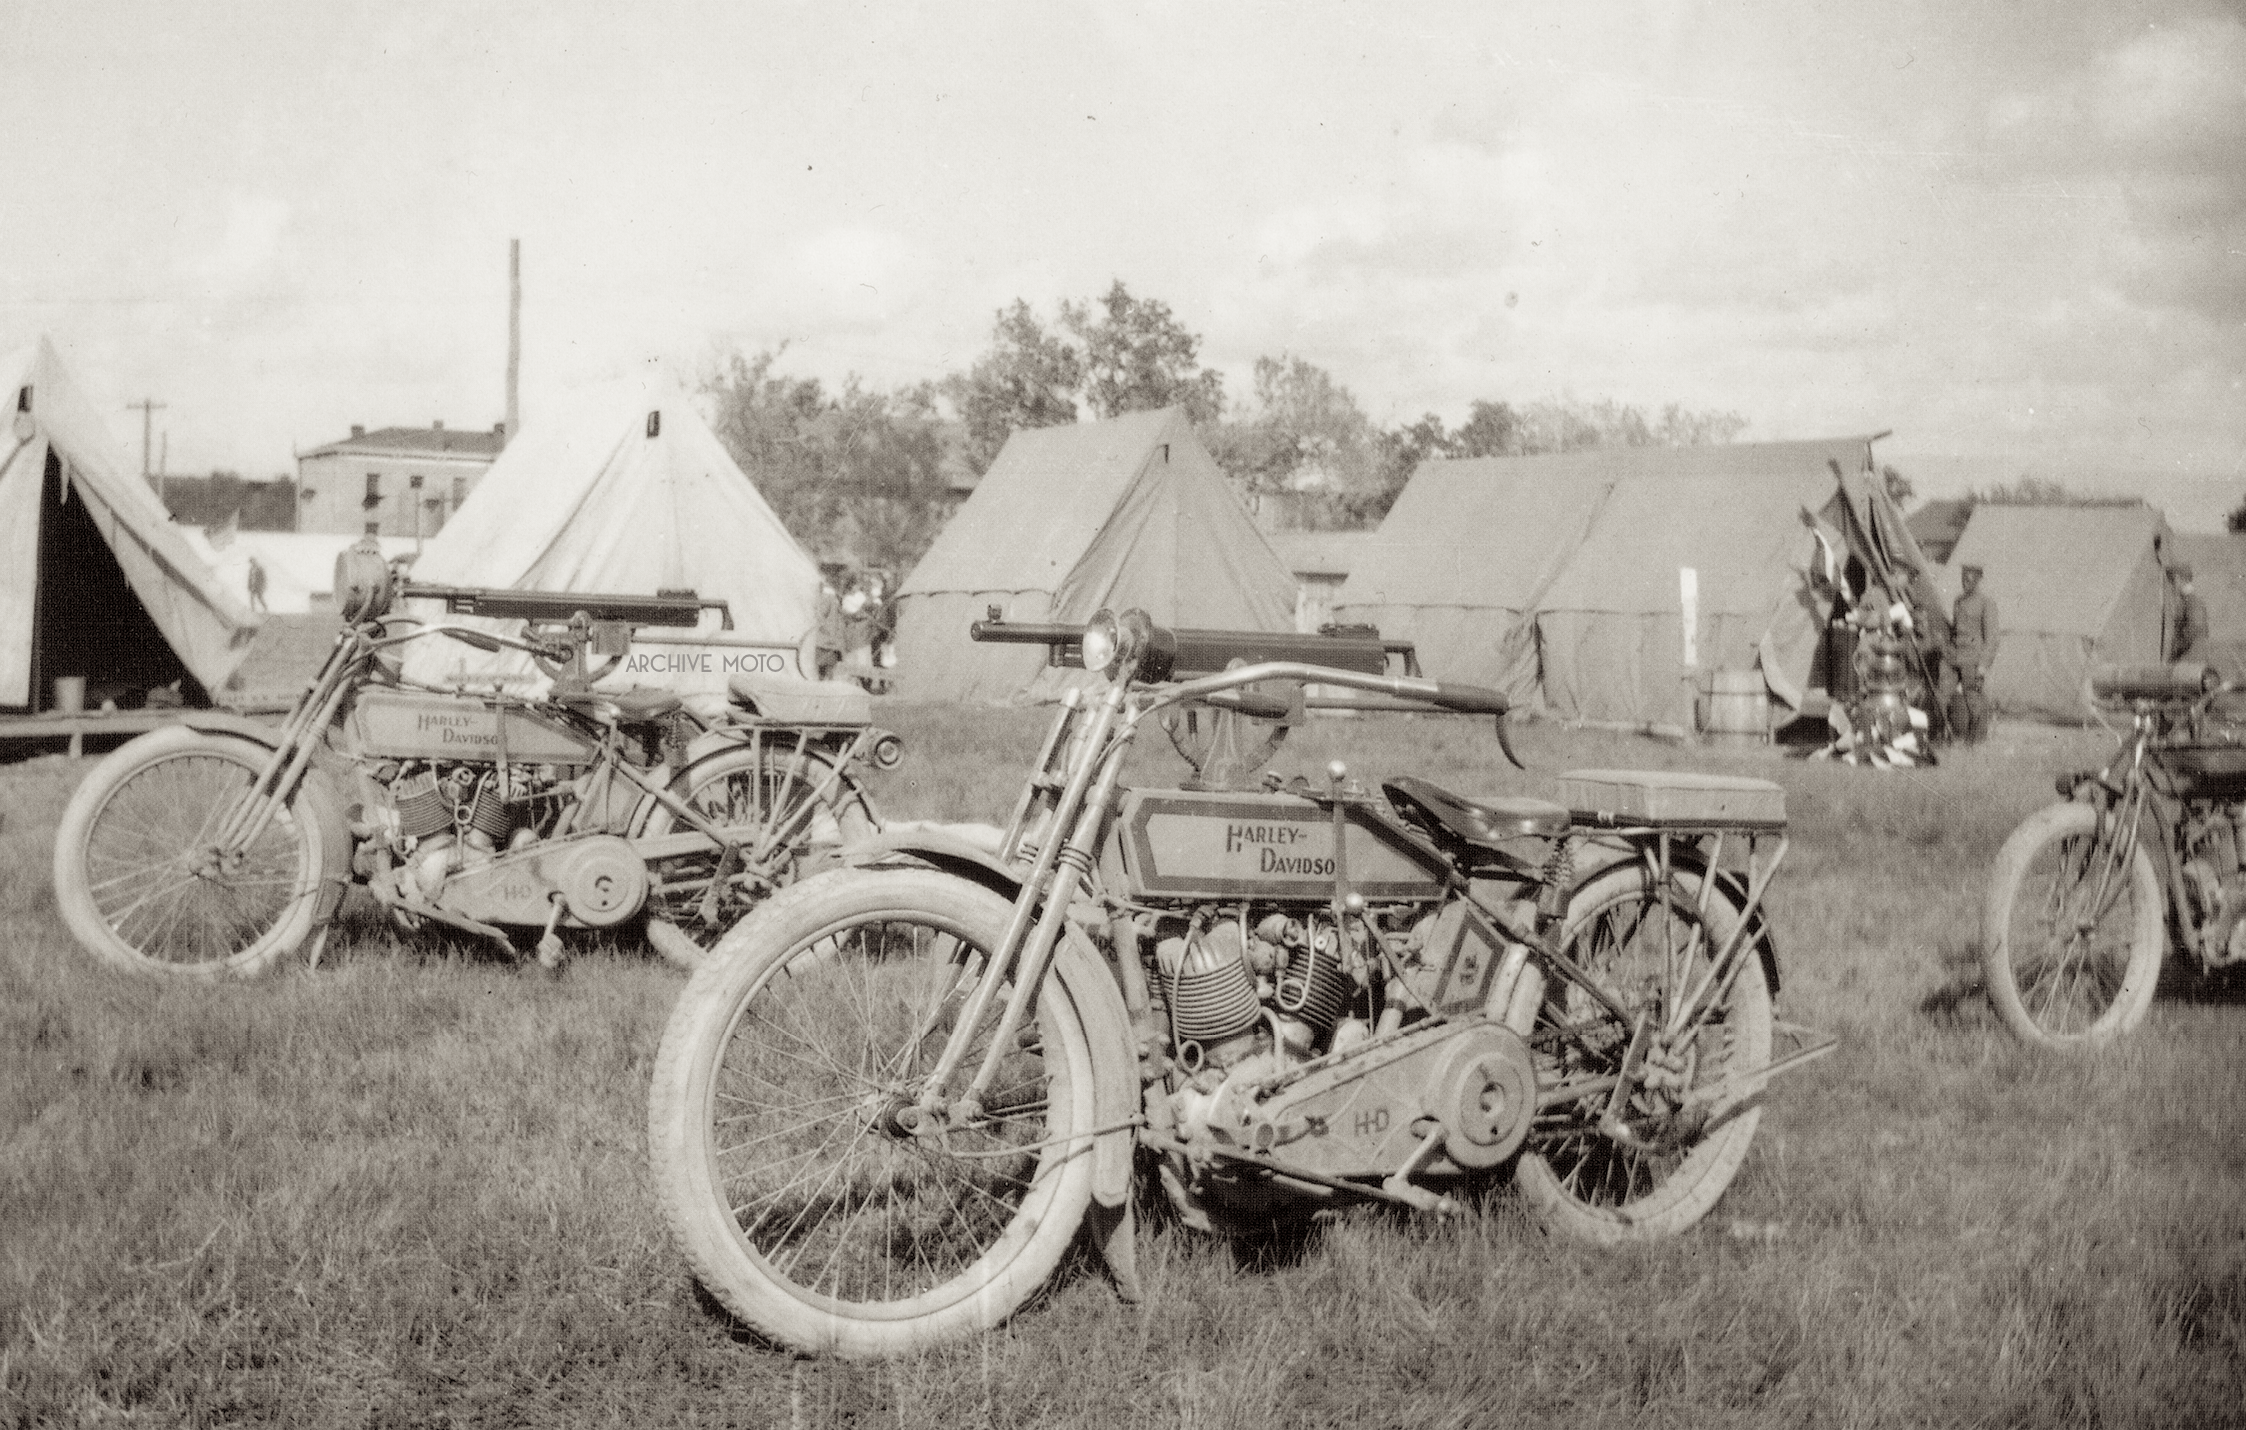 Here we can see one manifestation of this new mechanical warfare devised in the years leading up to America's involvement, an intriguing if not slightly romantic machine. However, given thought a grim reality becomes apparent, the gruesome intent of mounting a machine gun to the tank of a 1915 Harley-Davidson.